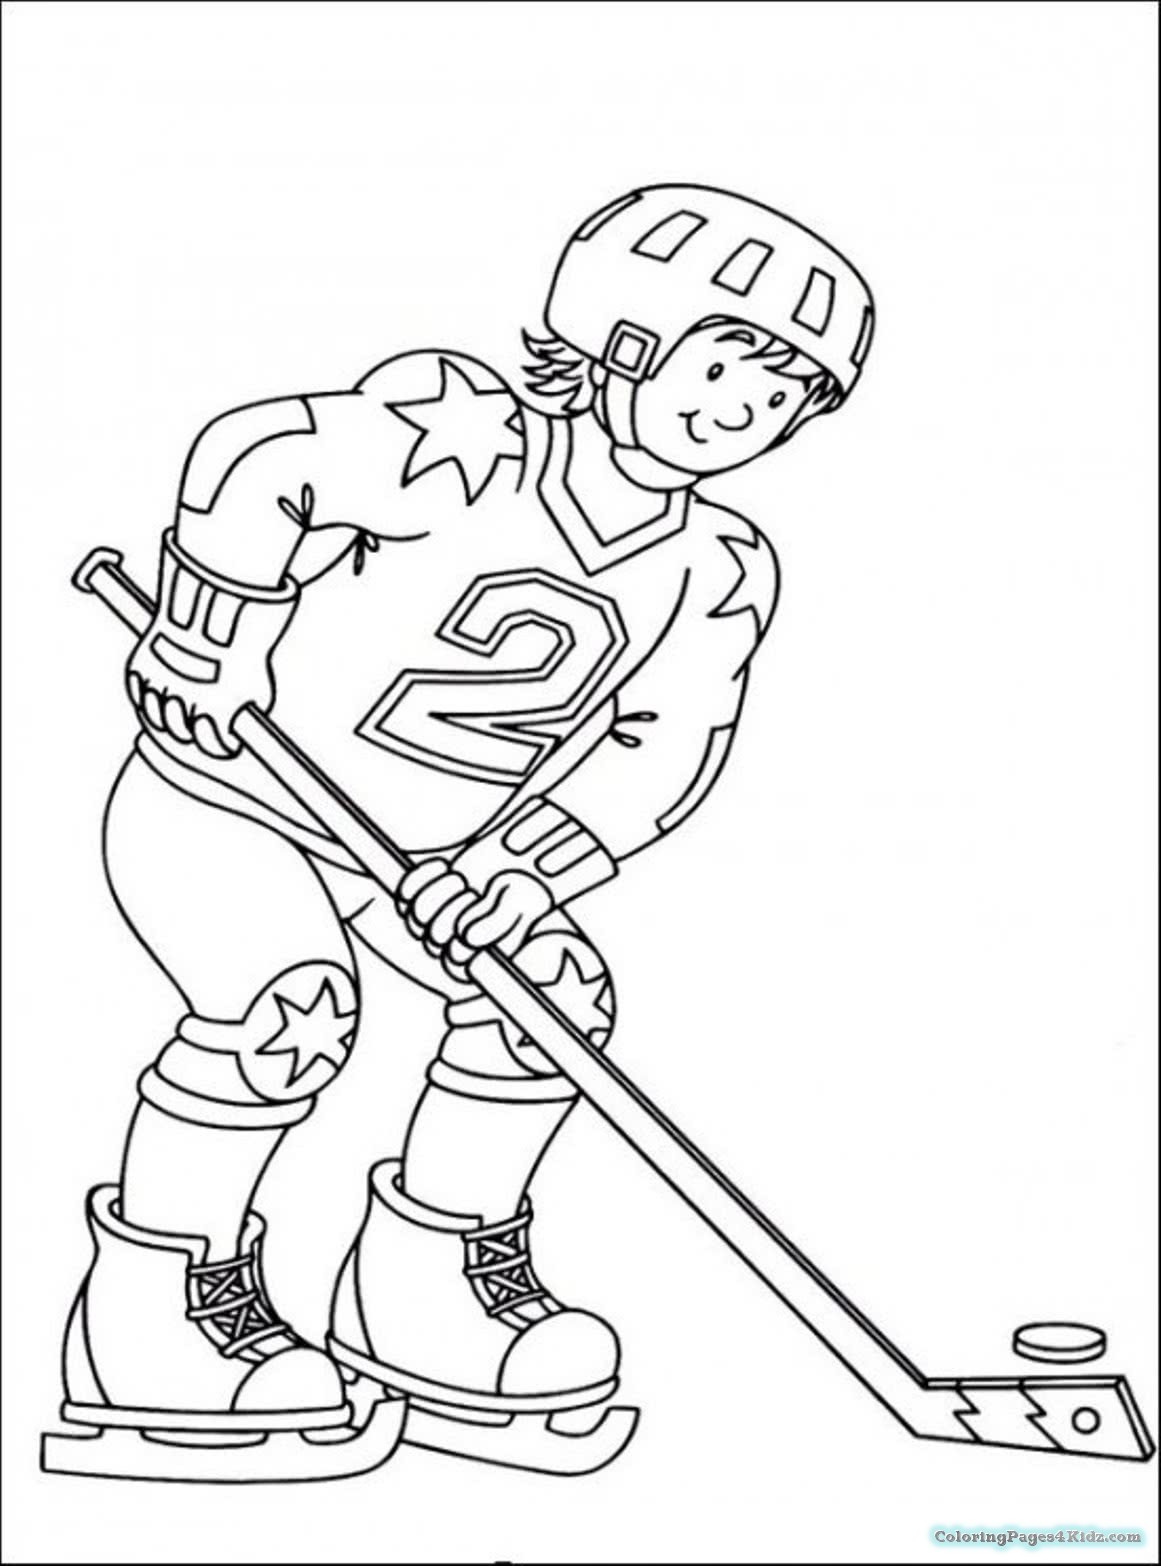 hockey pictures to color ice hockey coloring pages new york rangers coloring pictures to hockey color